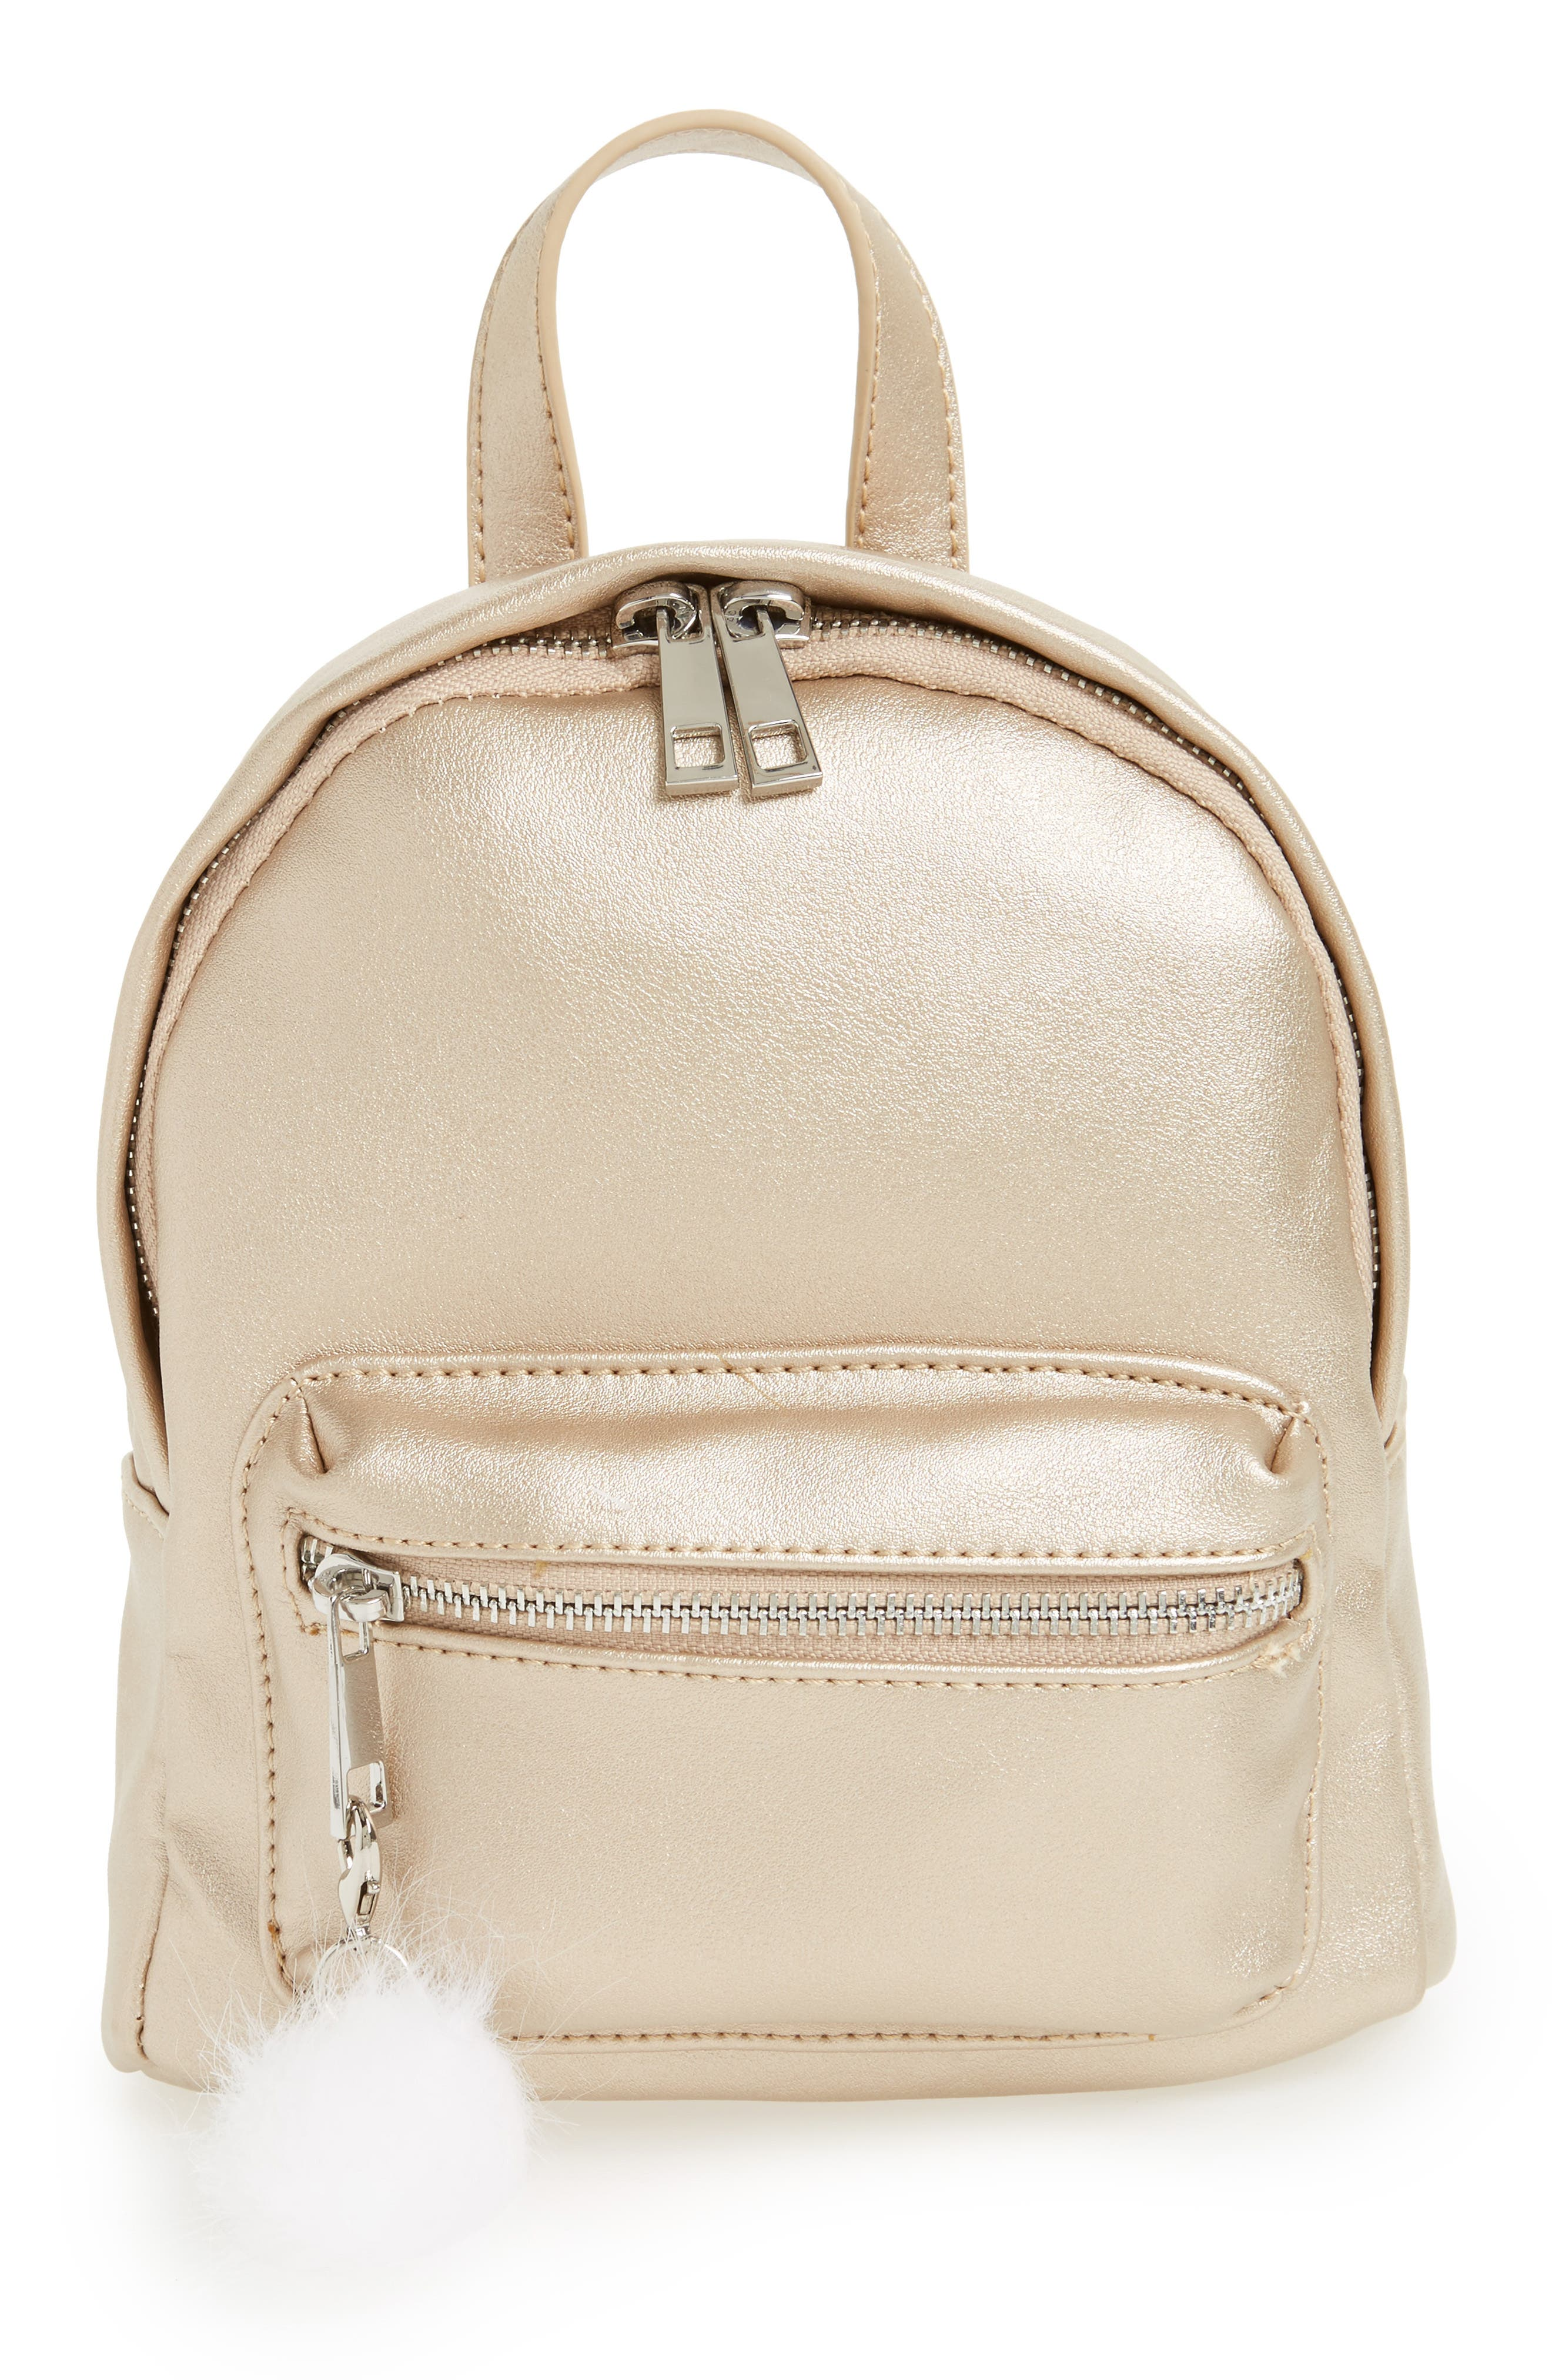 Faux Leather Mini Backpack,                             Main thumbnail 1, color,                             Gold/ Silver